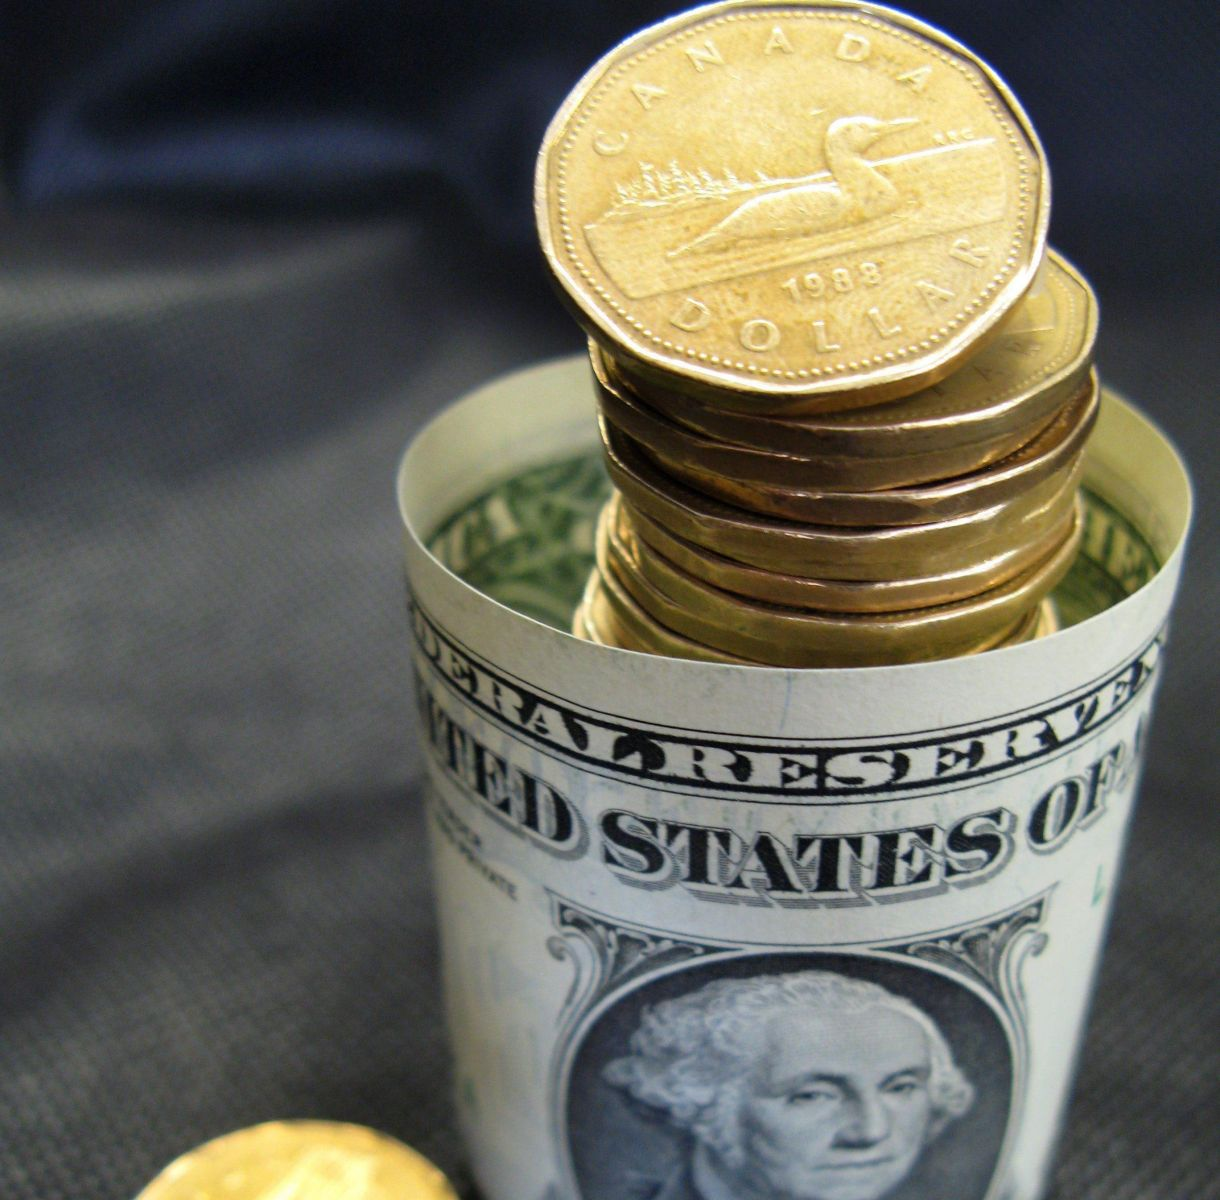 Dólar canadiense y peso mexicano, pierden valor por amenazas de Trump